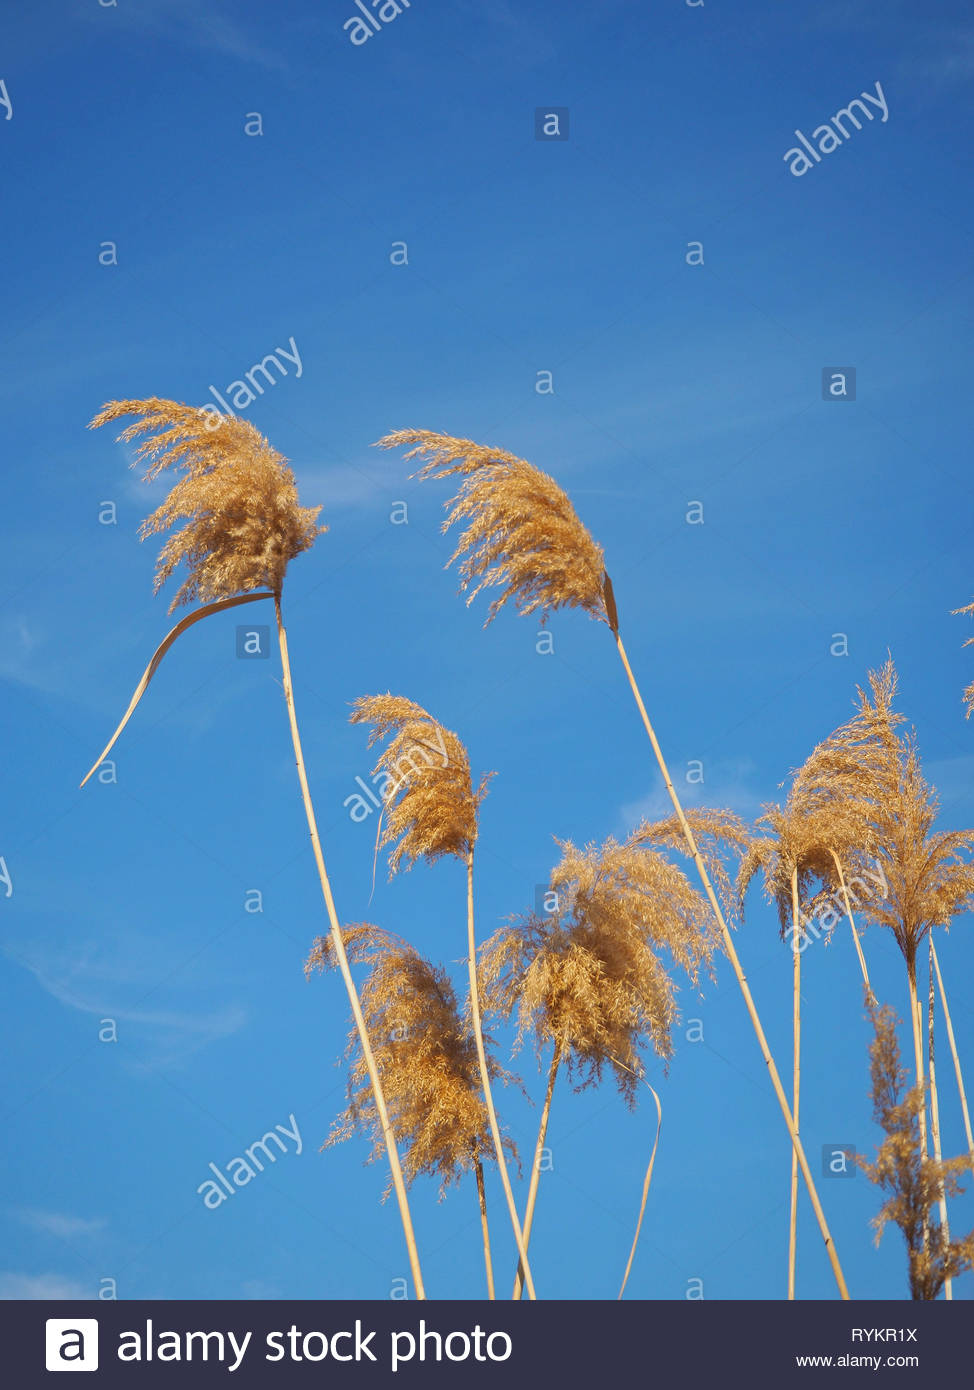 Top of common reeds isolated against blue sky - Stock Image